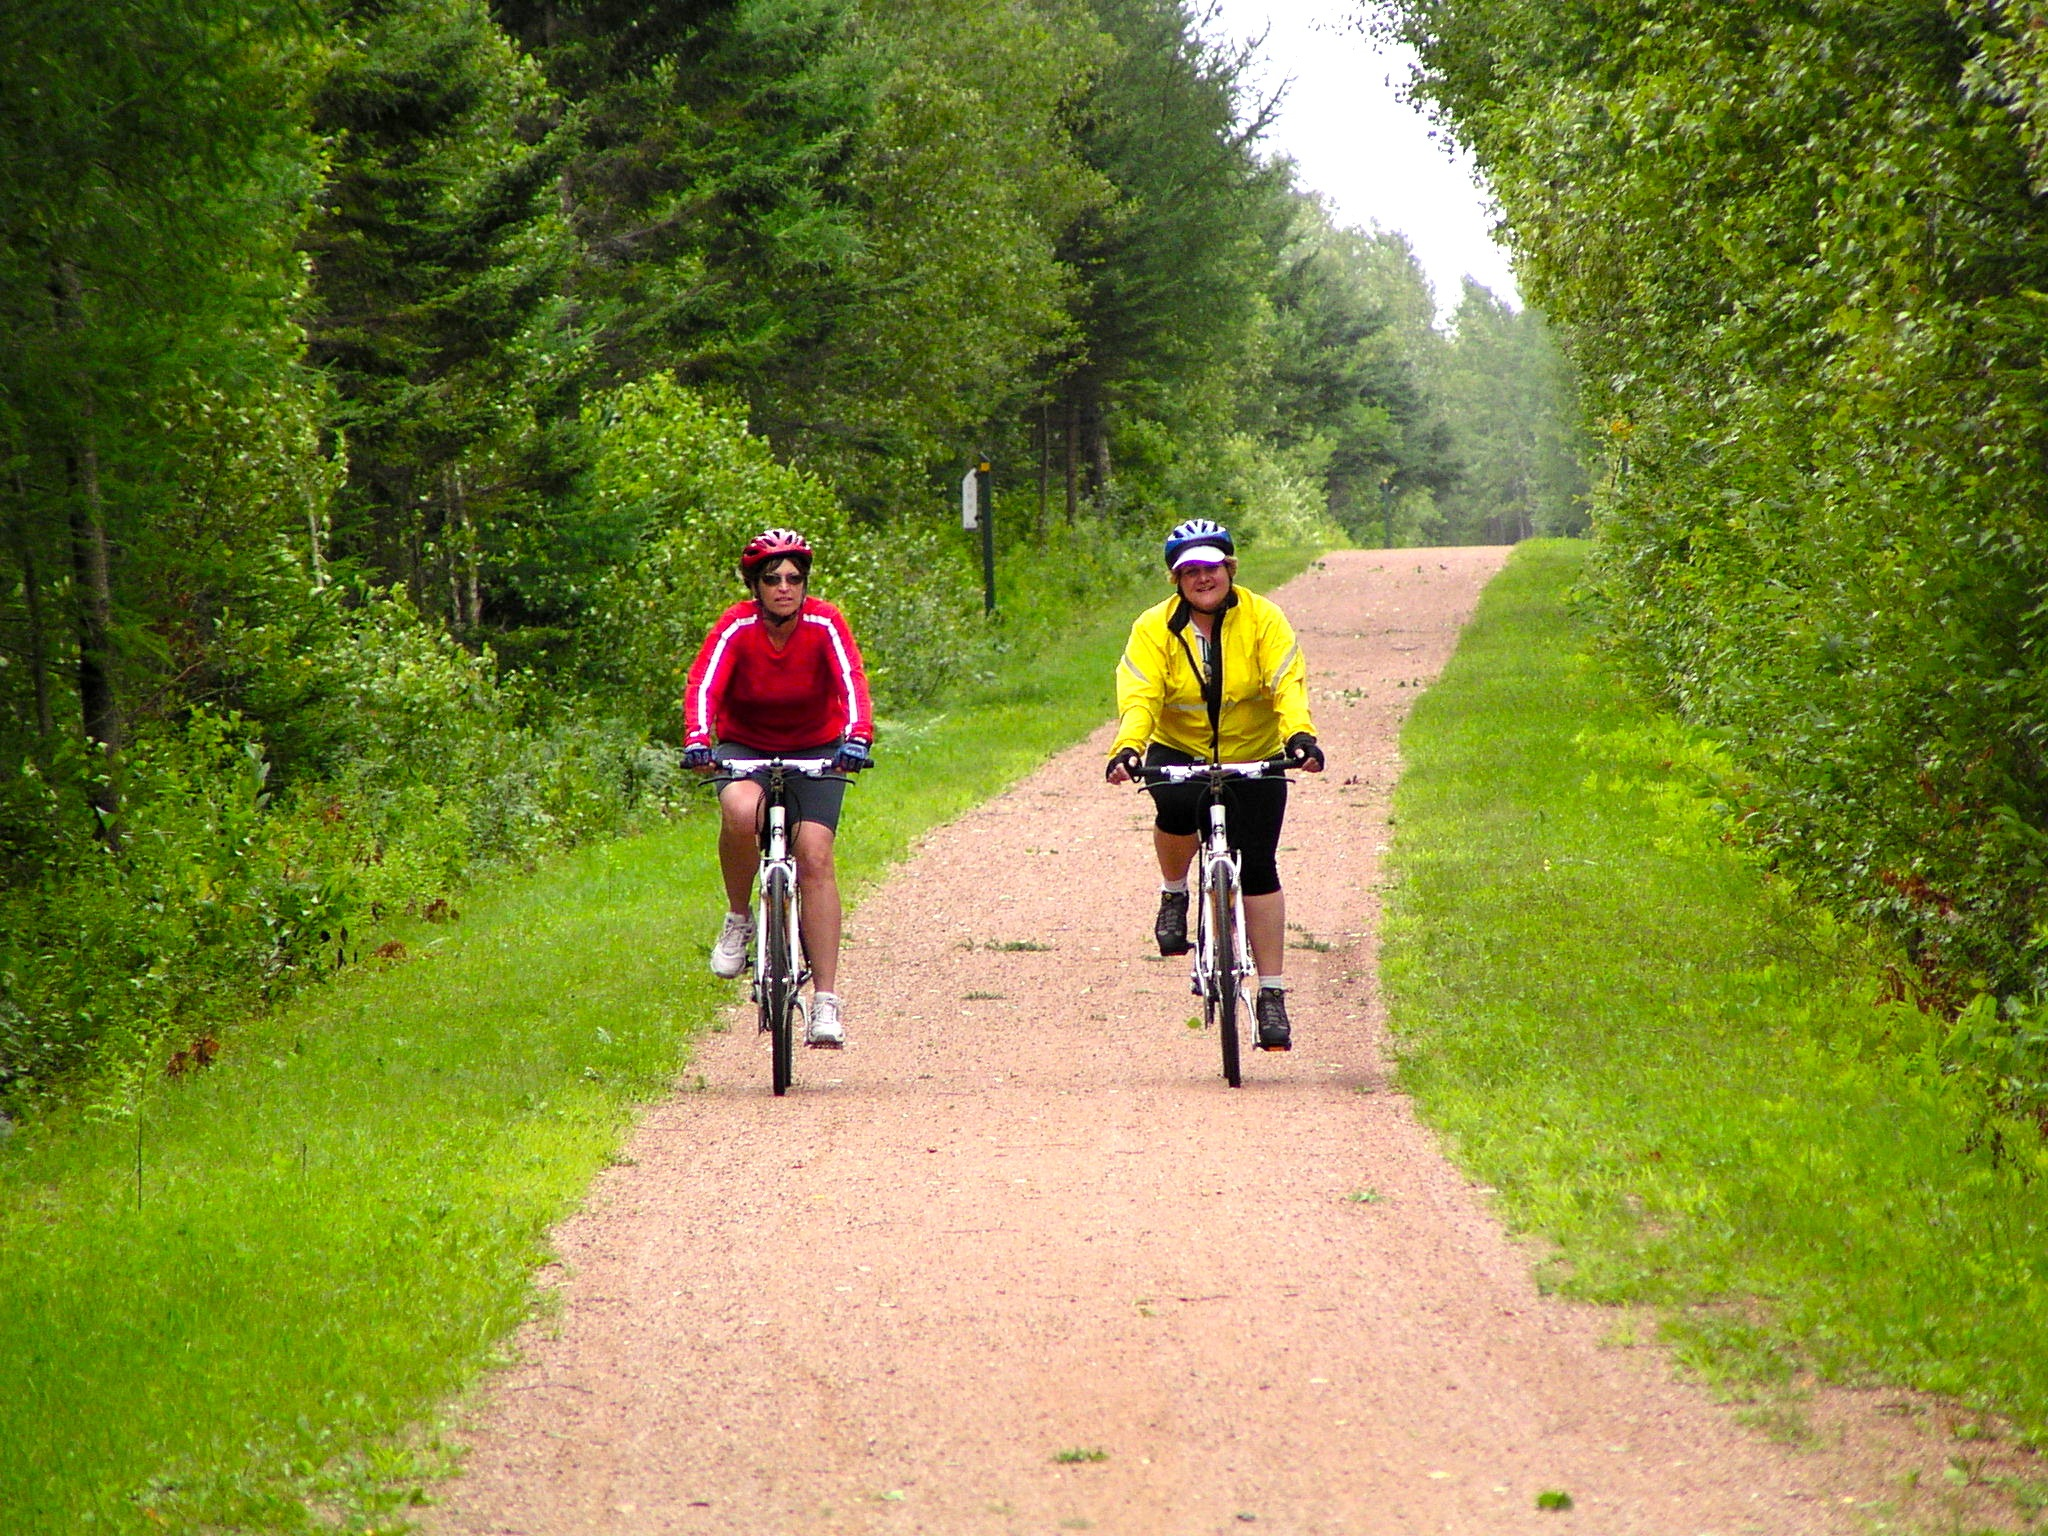 Prince Edward Island bike tour cyclists